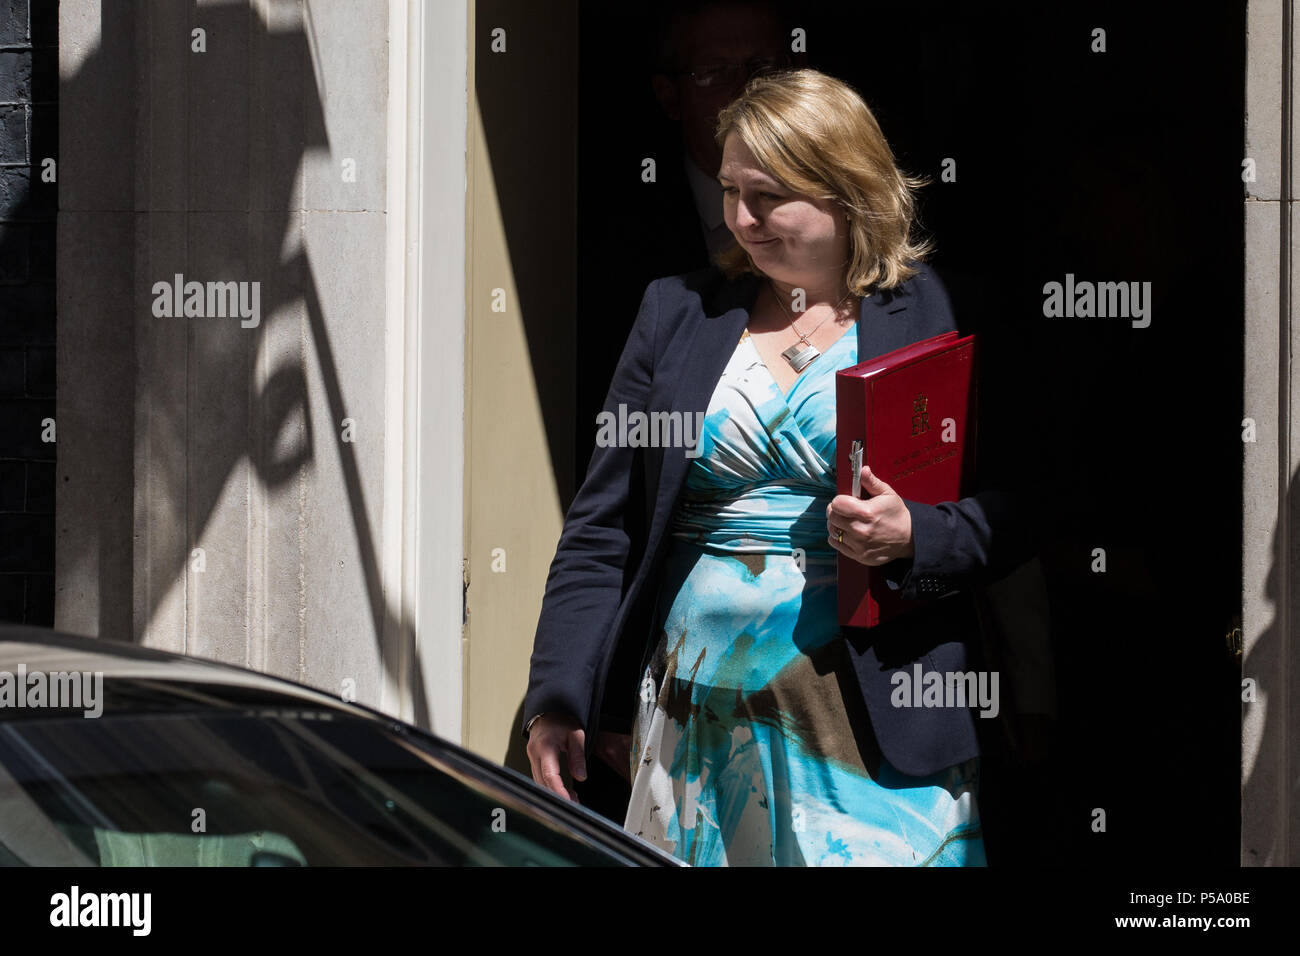 London, UK. 26th June 2018. Karen Bradley MP, Secretary of State for Northern Ireland, leaves 10 Downing Street following a Cabinet meeting. Topics discussed were expected to include a European Council summit meeting to be held later this week and Heathrow expansion. Credit: Mark Kerrison/Alamy Live NewsStock Photo